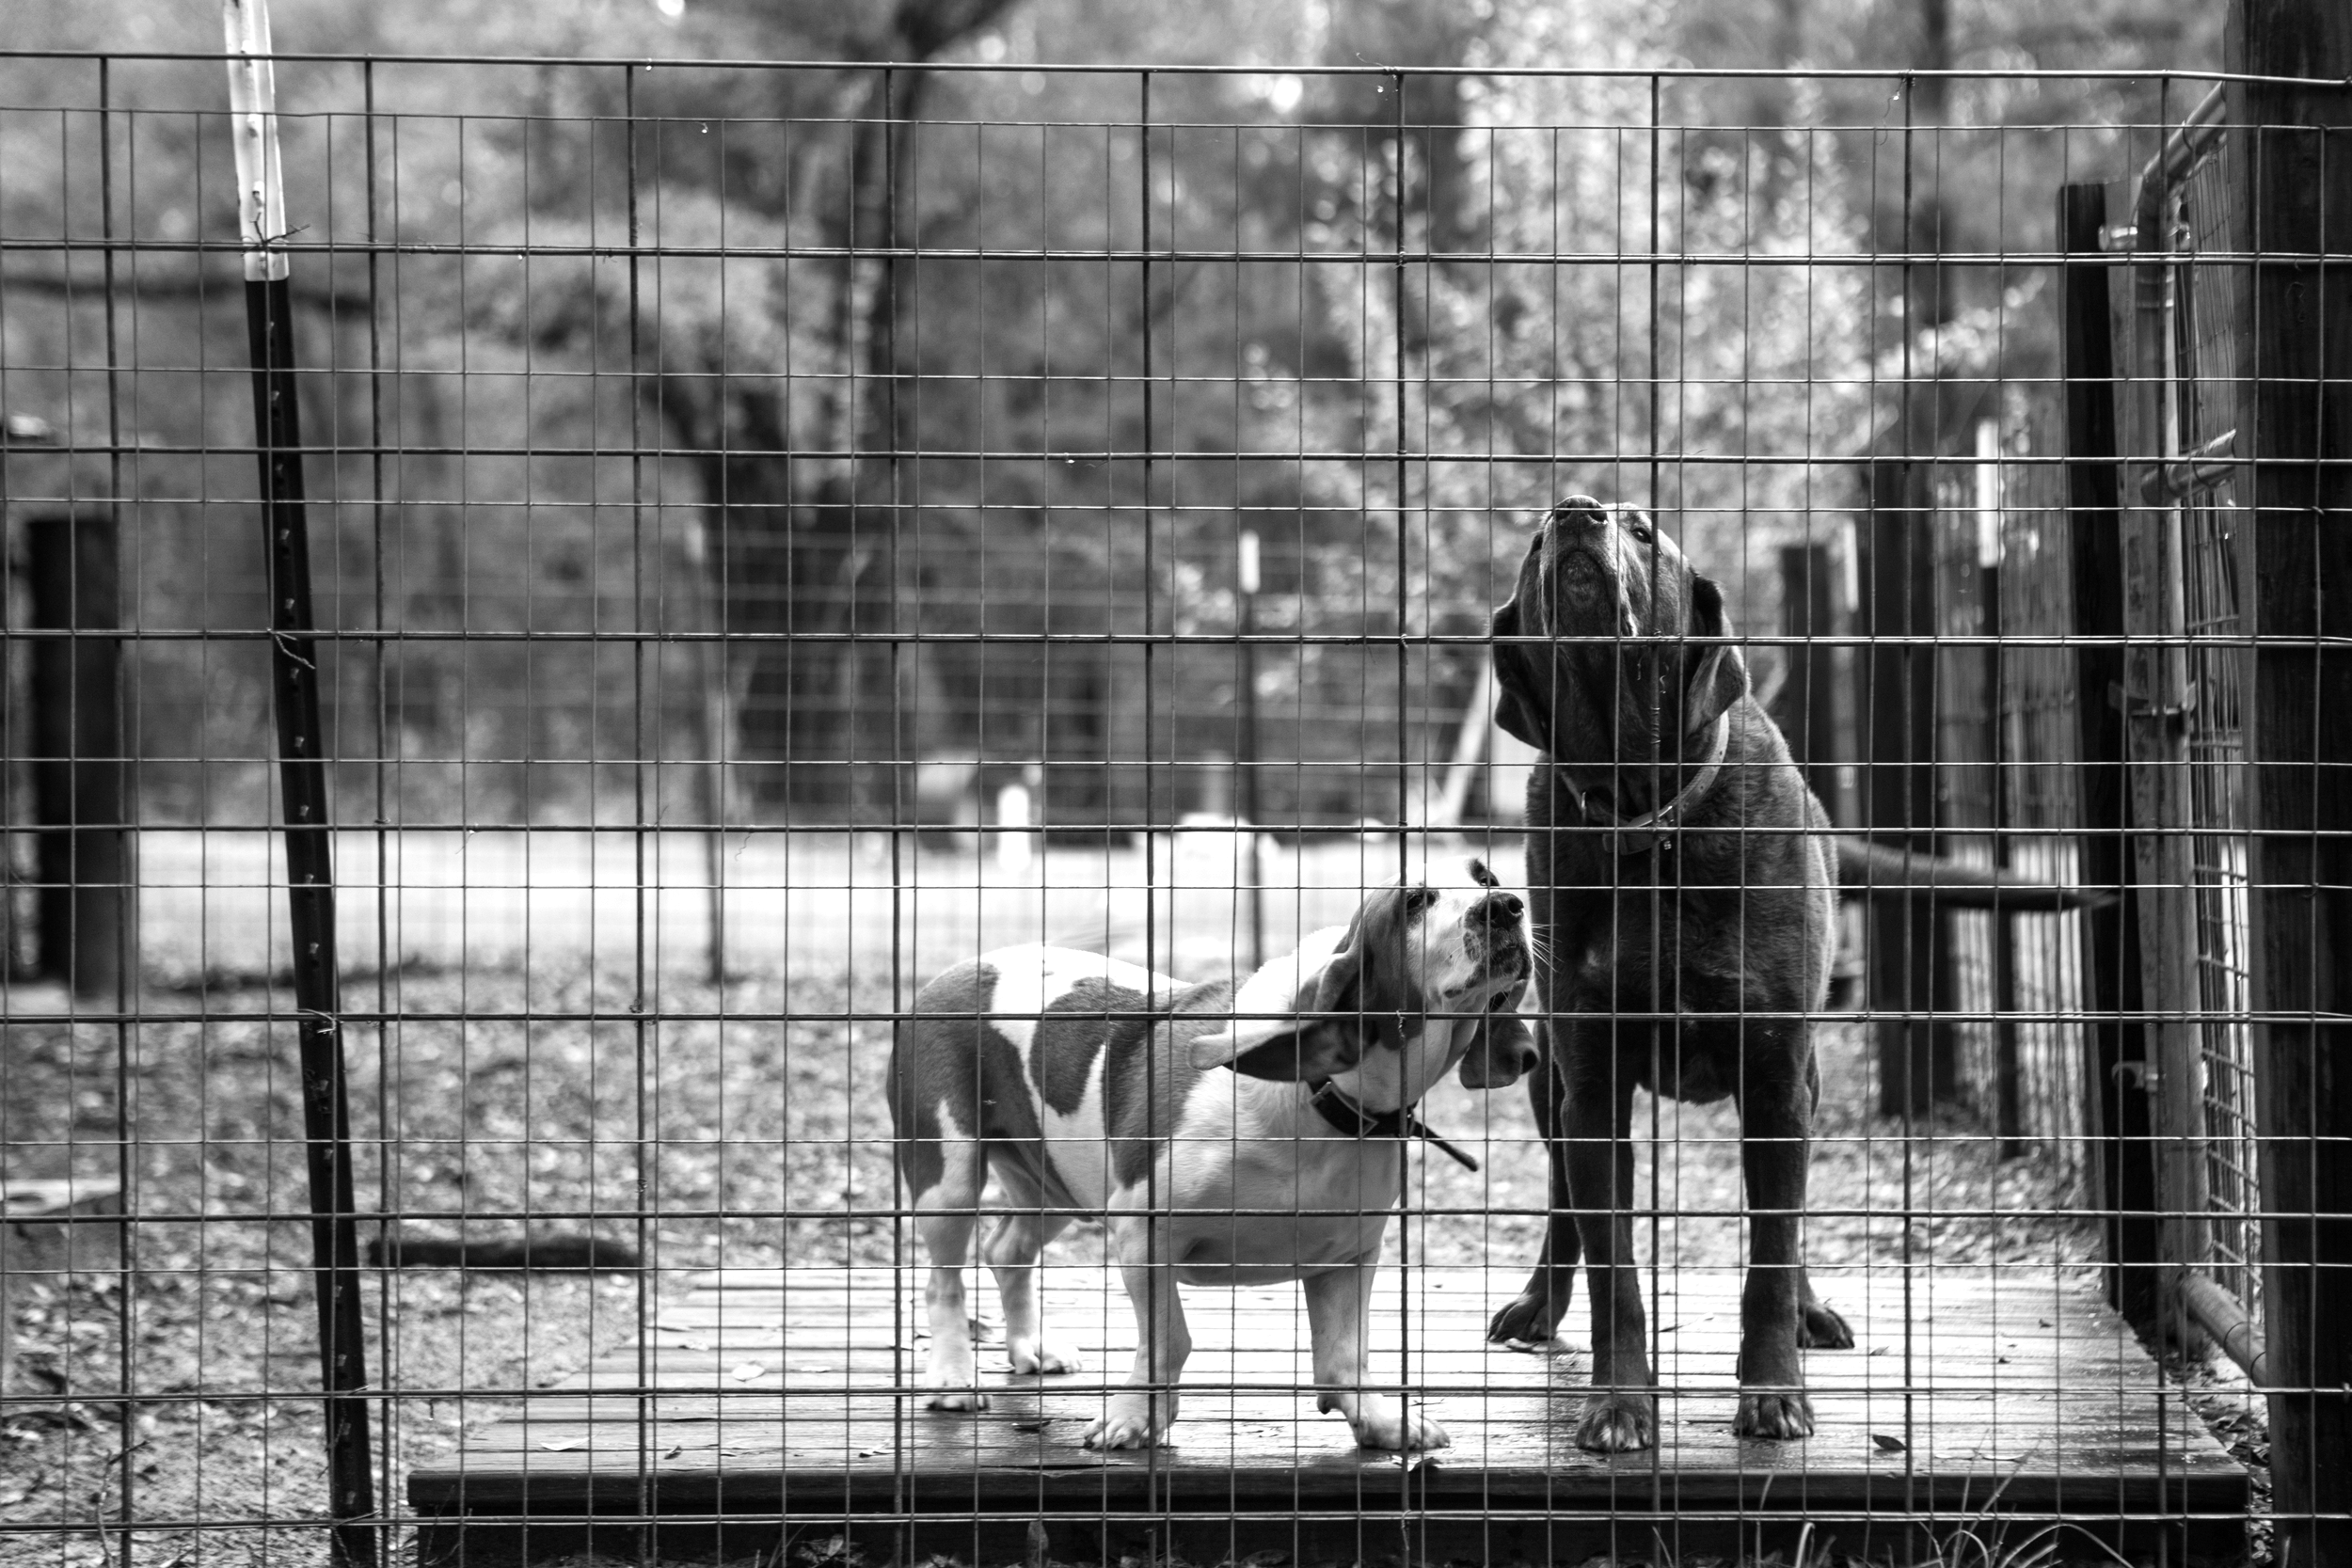 Deep South farm dogs, doing their thing.